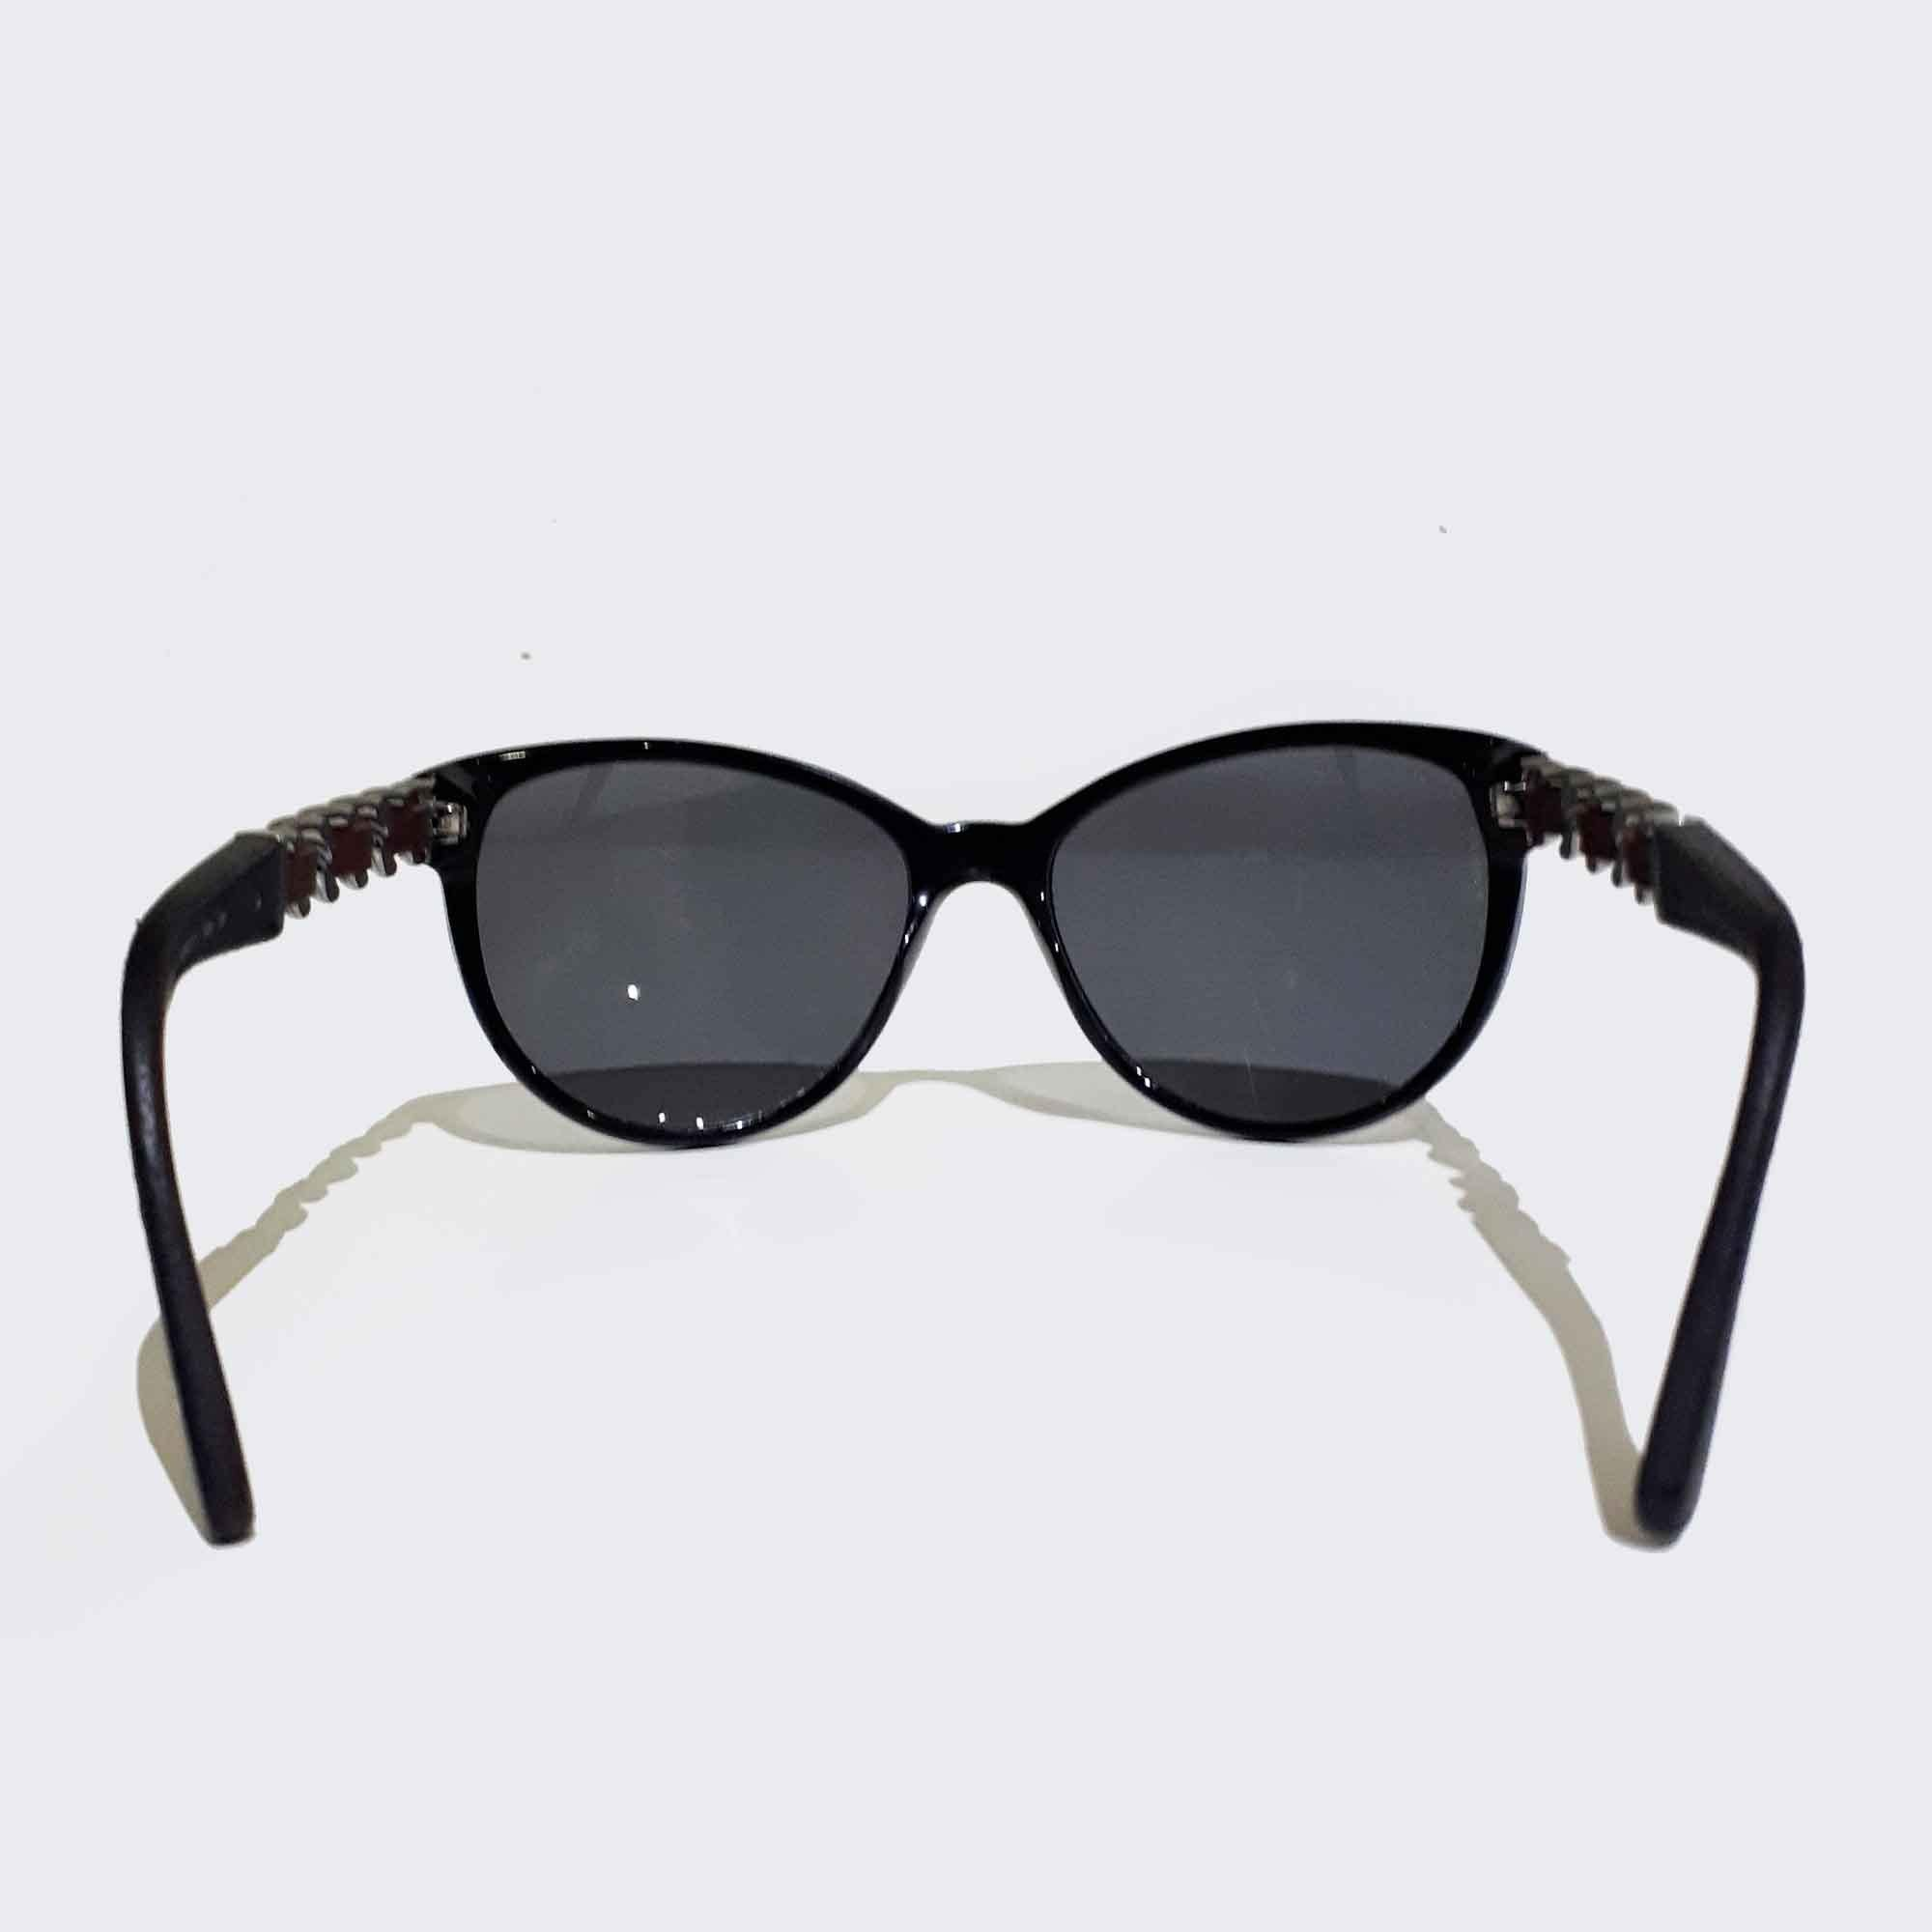 Chanel Sunglasses With Woven Chain Arms – Garderobe